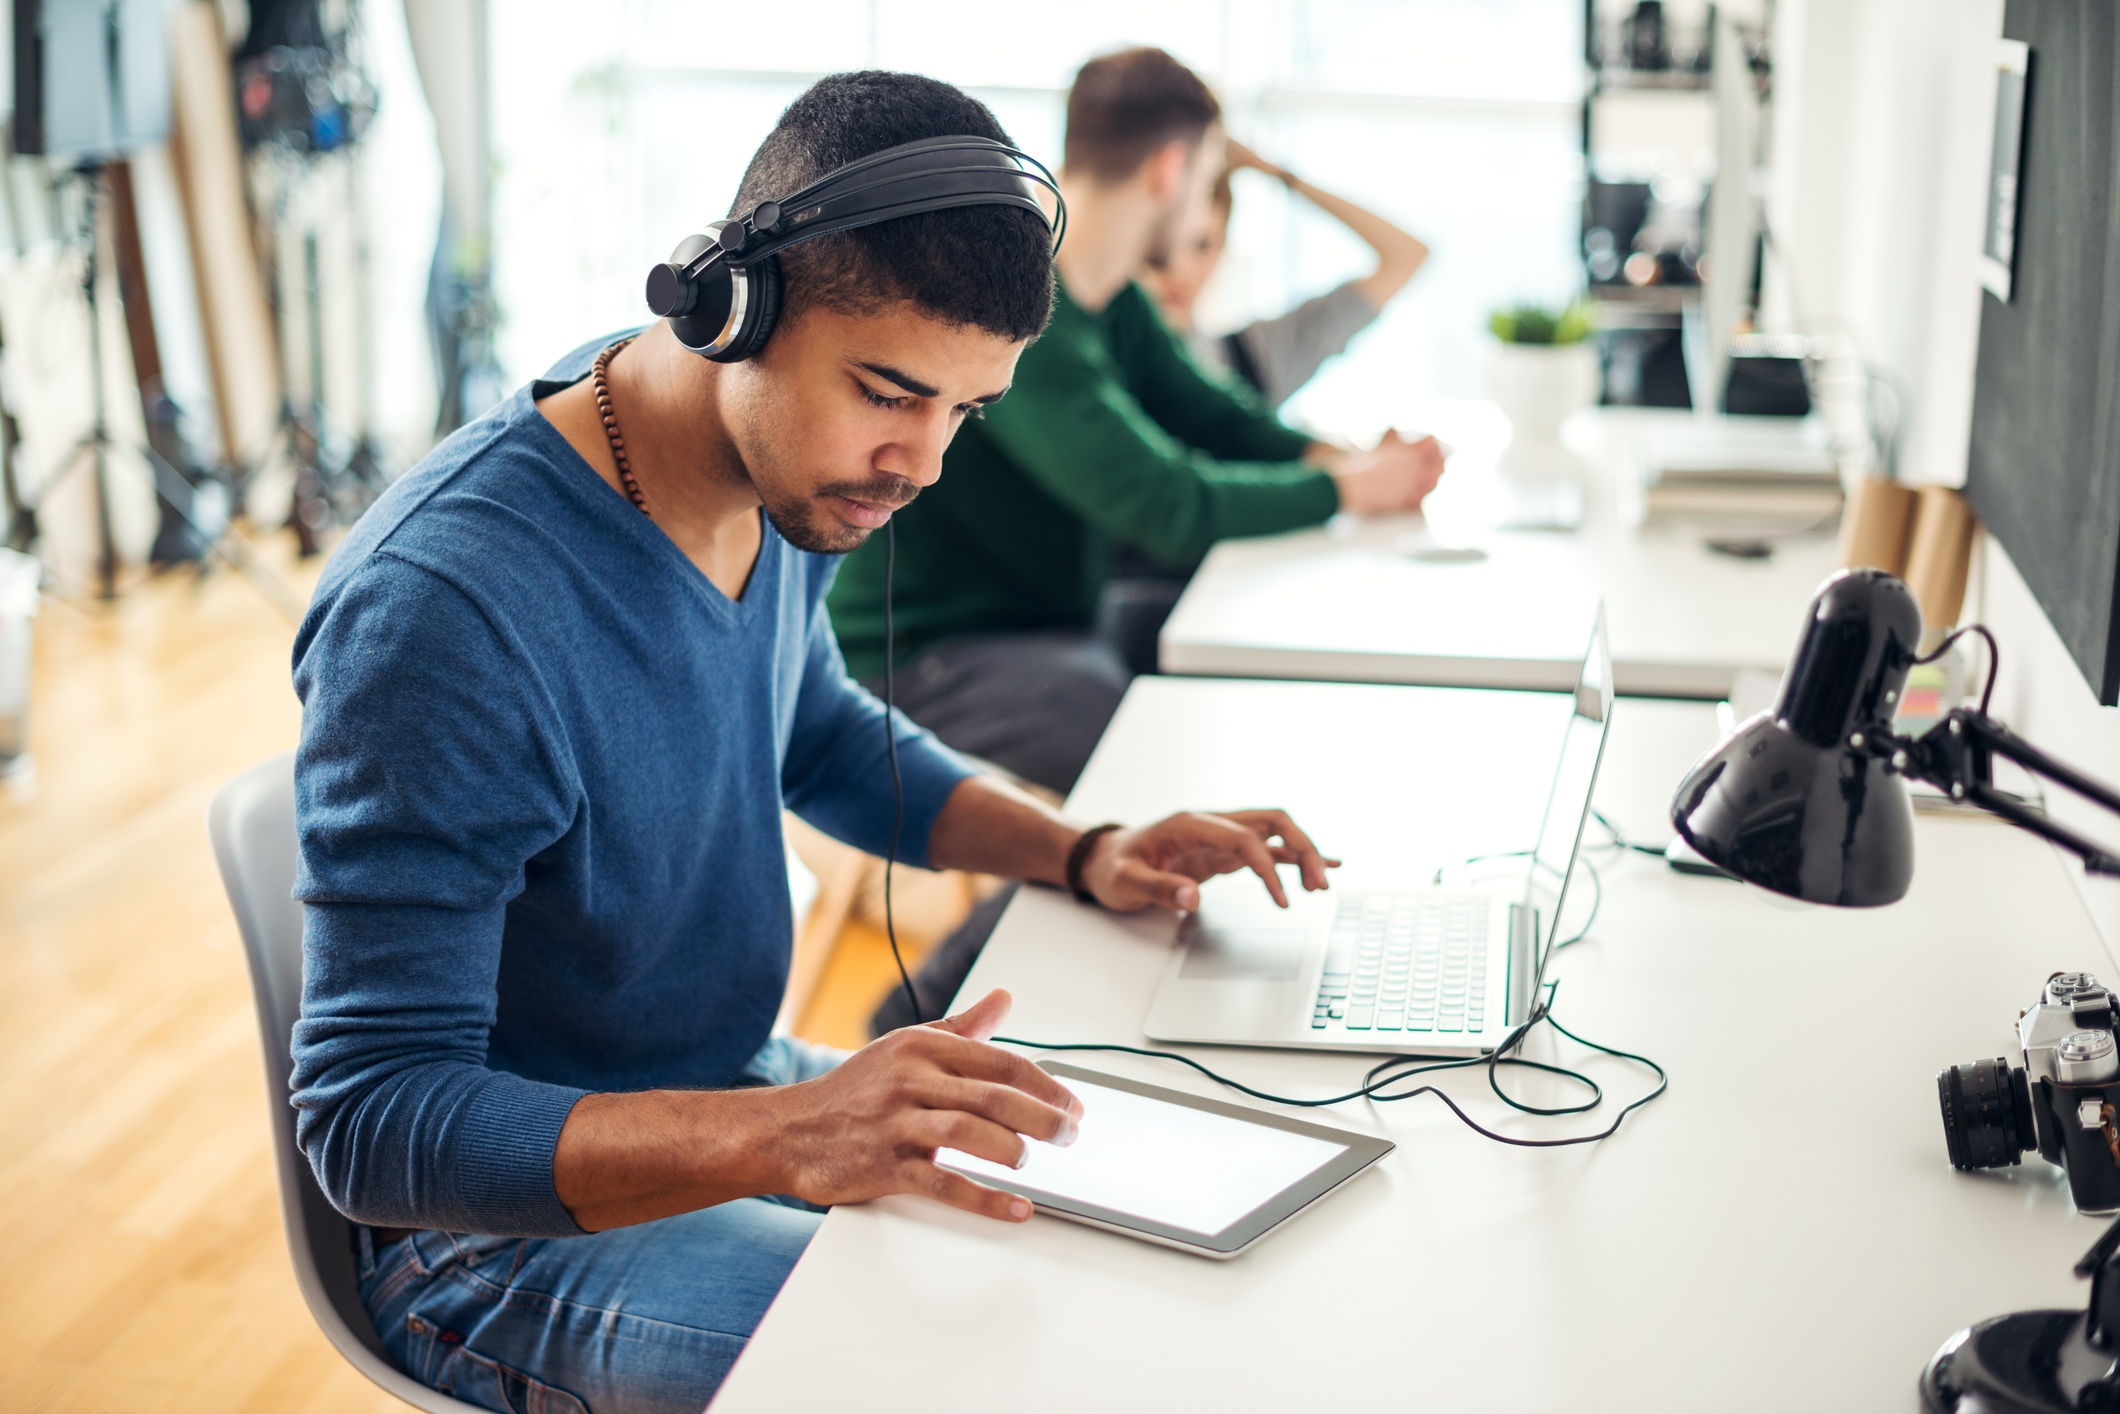 Allow employees to listen to music in the workplace